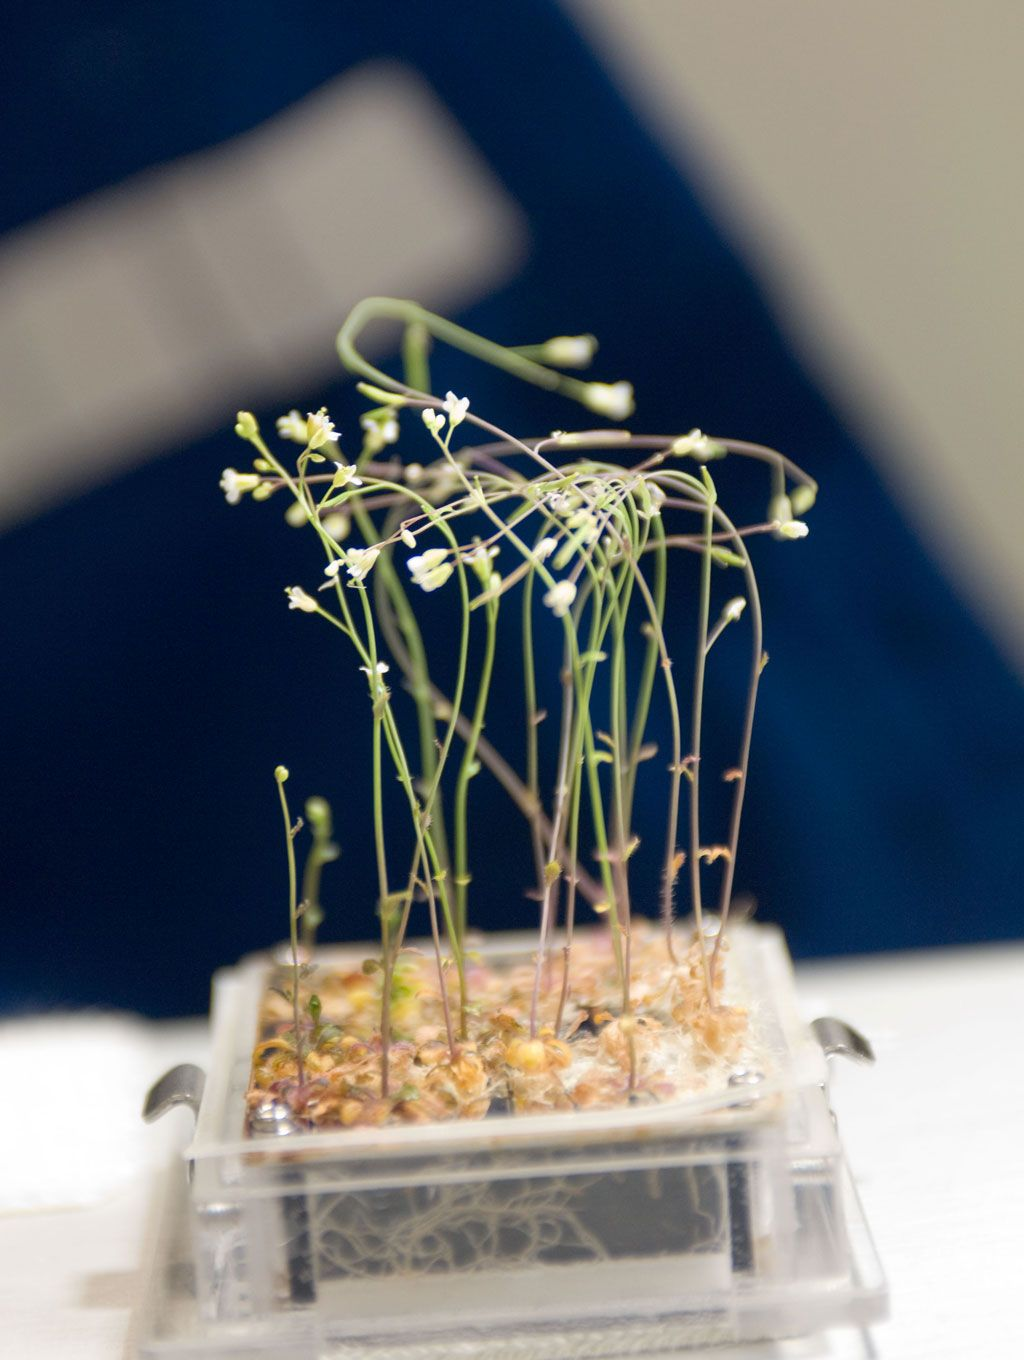 How Plants Deal With Space Travel | Space travel, Biology ...